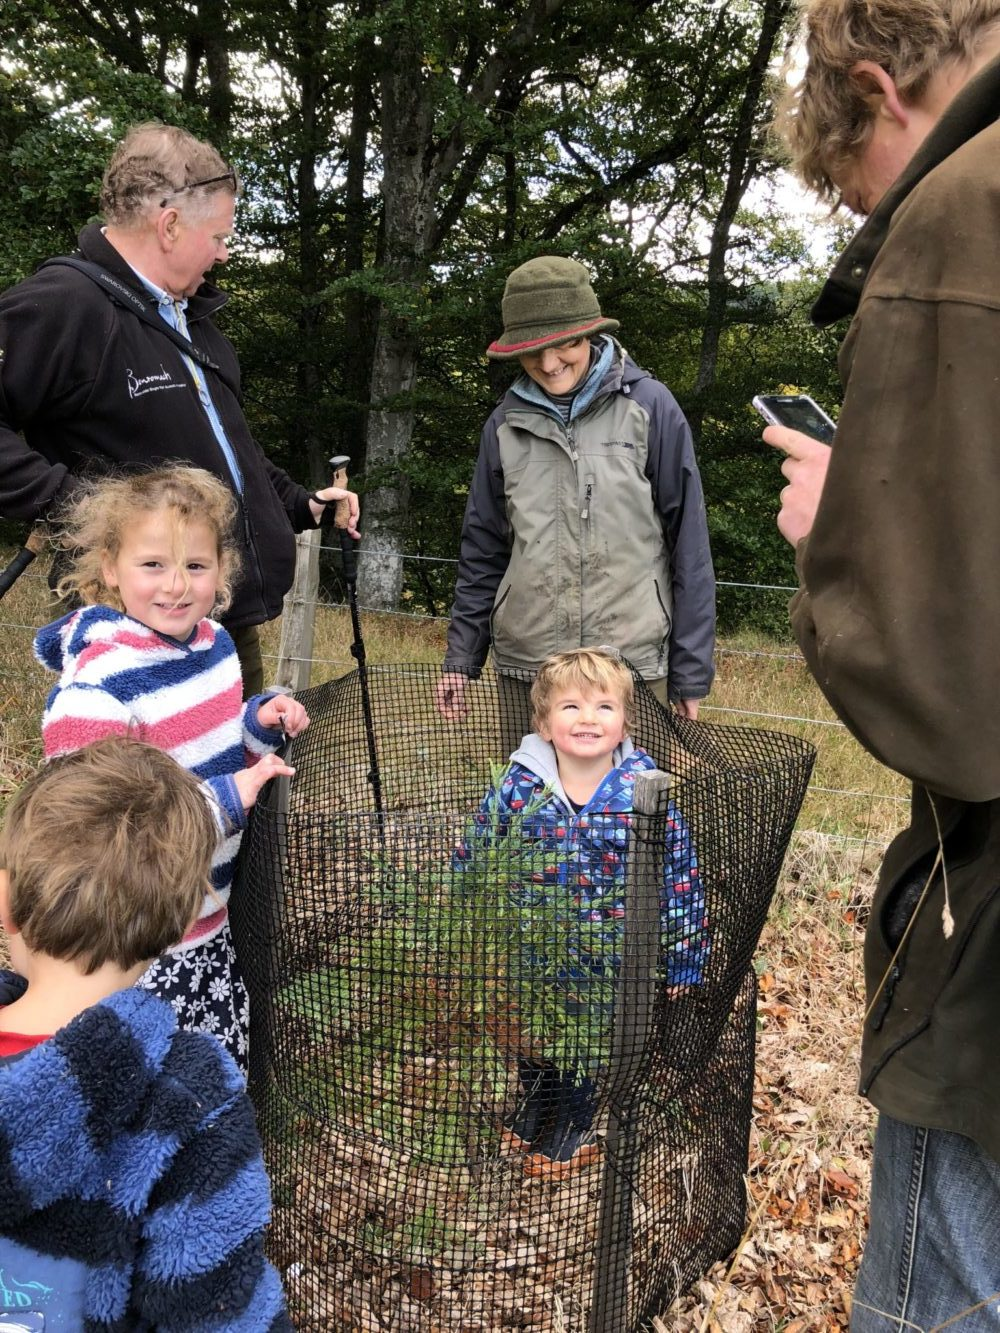 planting trees: a family tradition at Logie